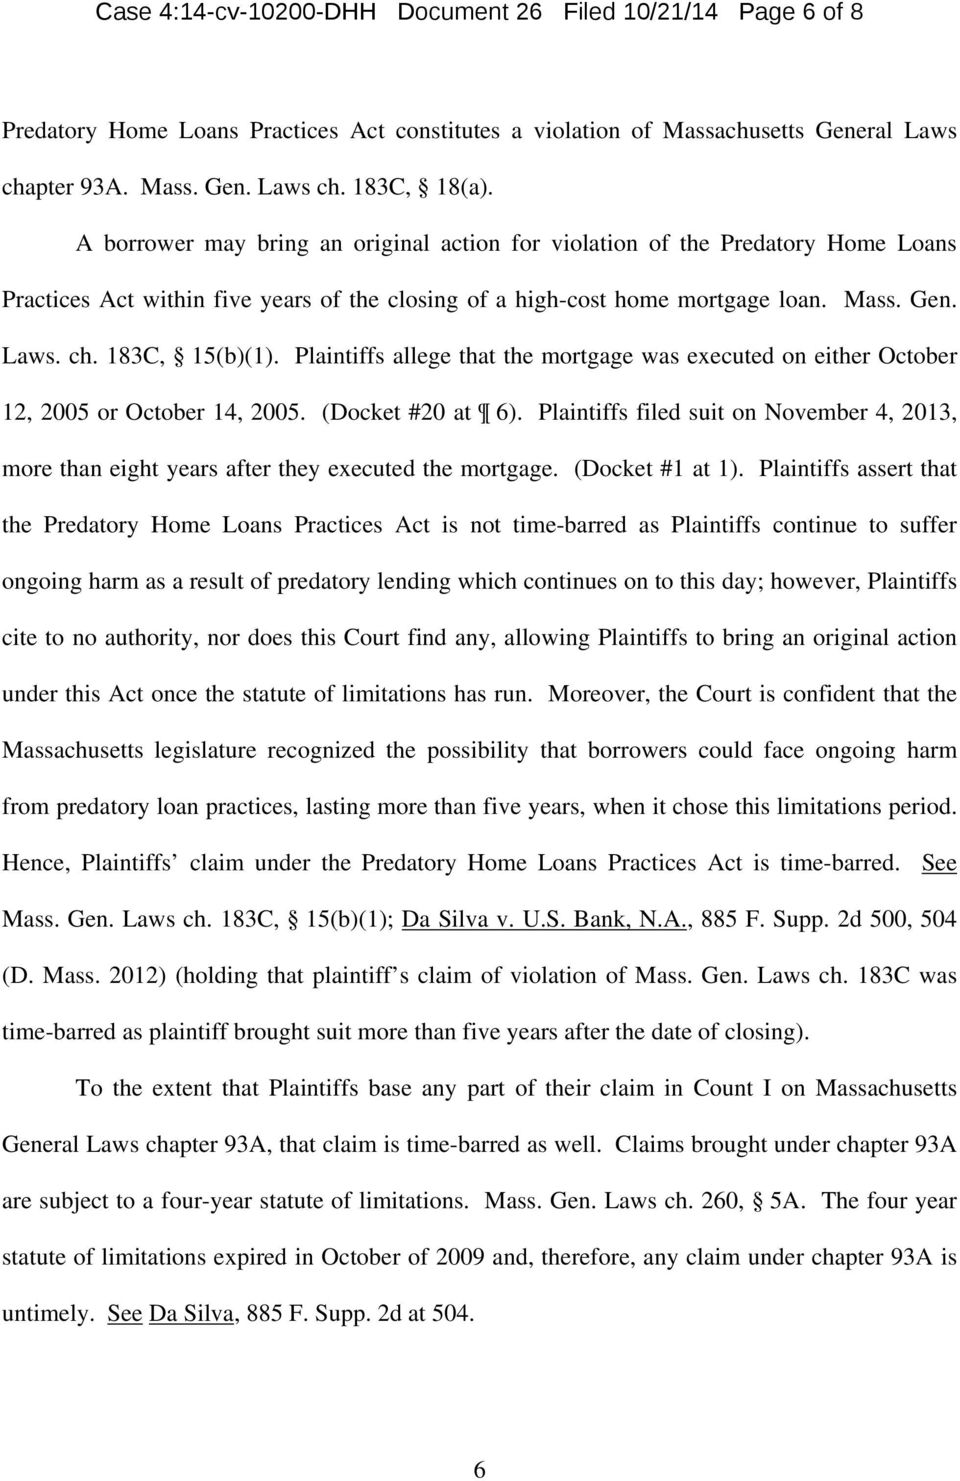 Plaintiffs allege that the mortgage was executed on either October 12, 2005 or October 14, 2005. (Docket #20 at 6).